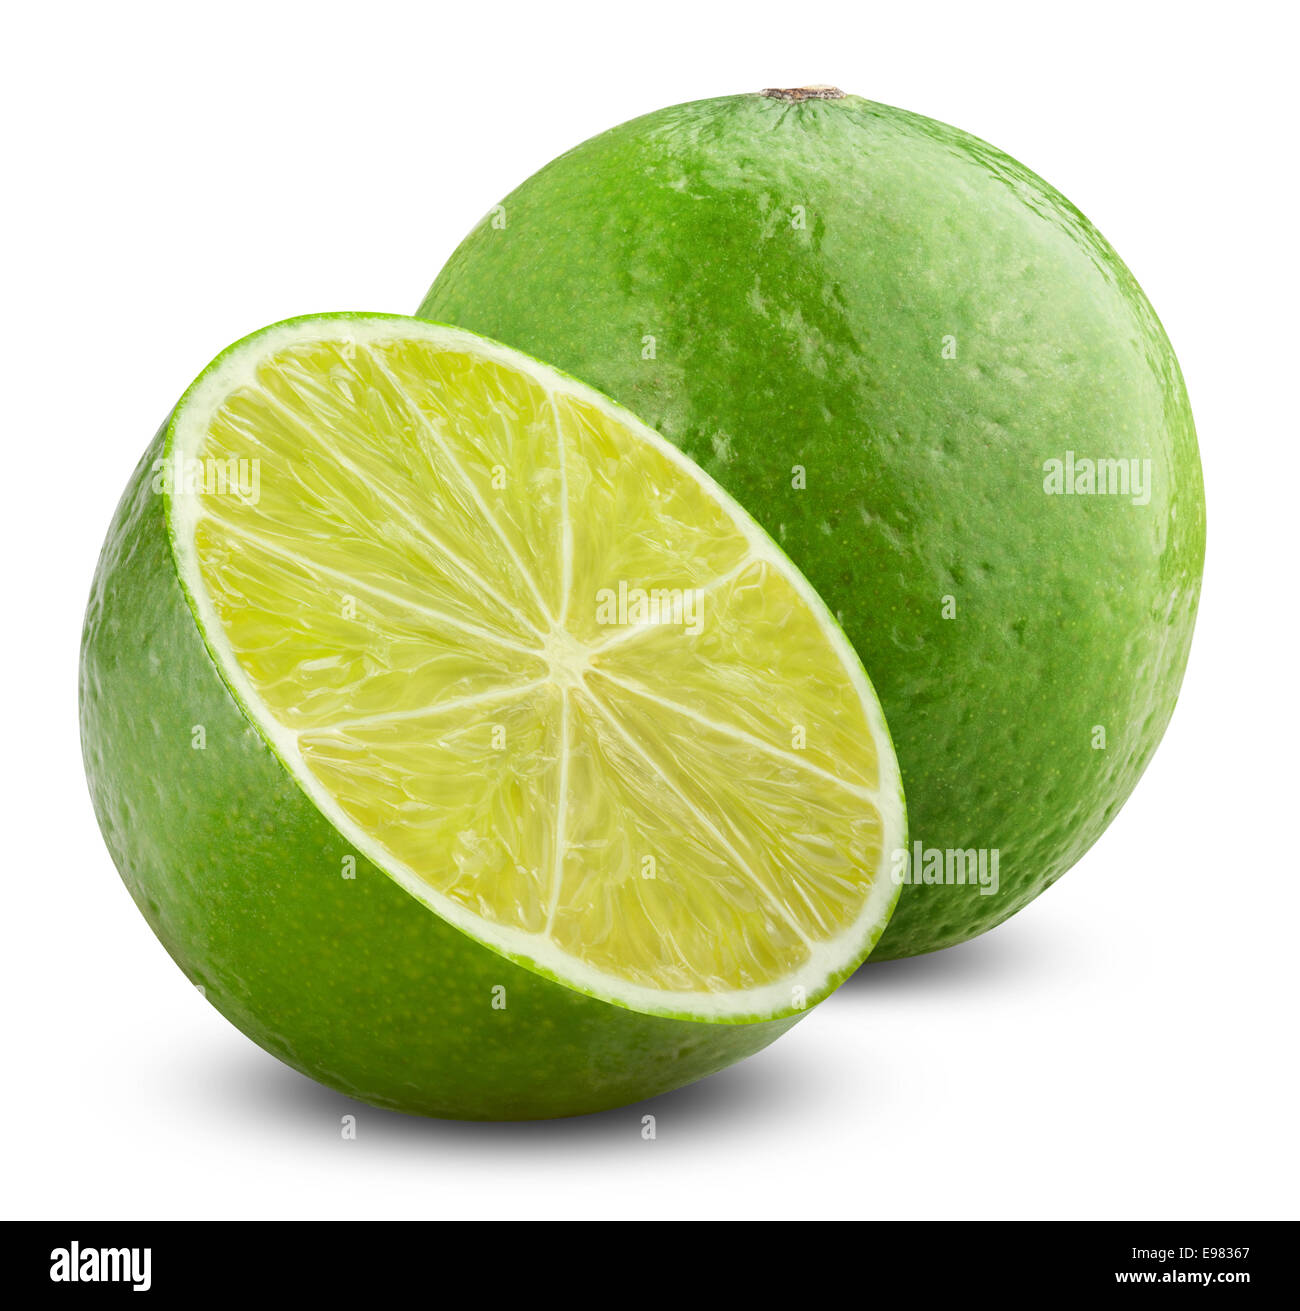 One and half limes on white background. Clipping Path - Stock Image